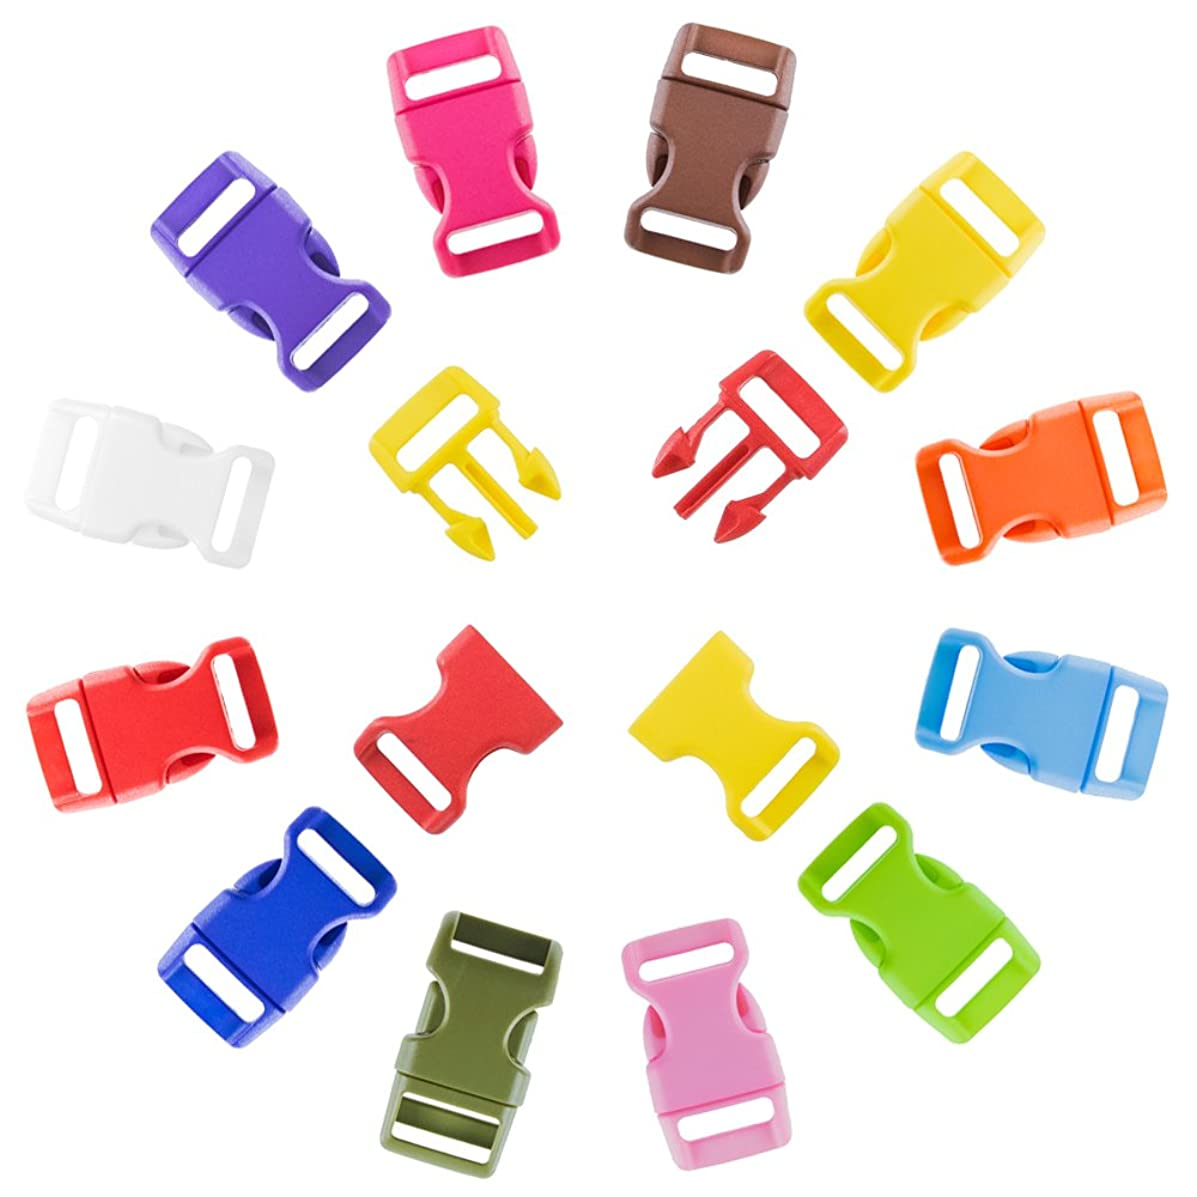 Craft County Colorful & Contoured 5/8 Inch Side Release Buckles - Pack Sizes Range From 5 to 1000 - Ideal for DIY Crafting Bracelets, Lanyards, Keychains, and More